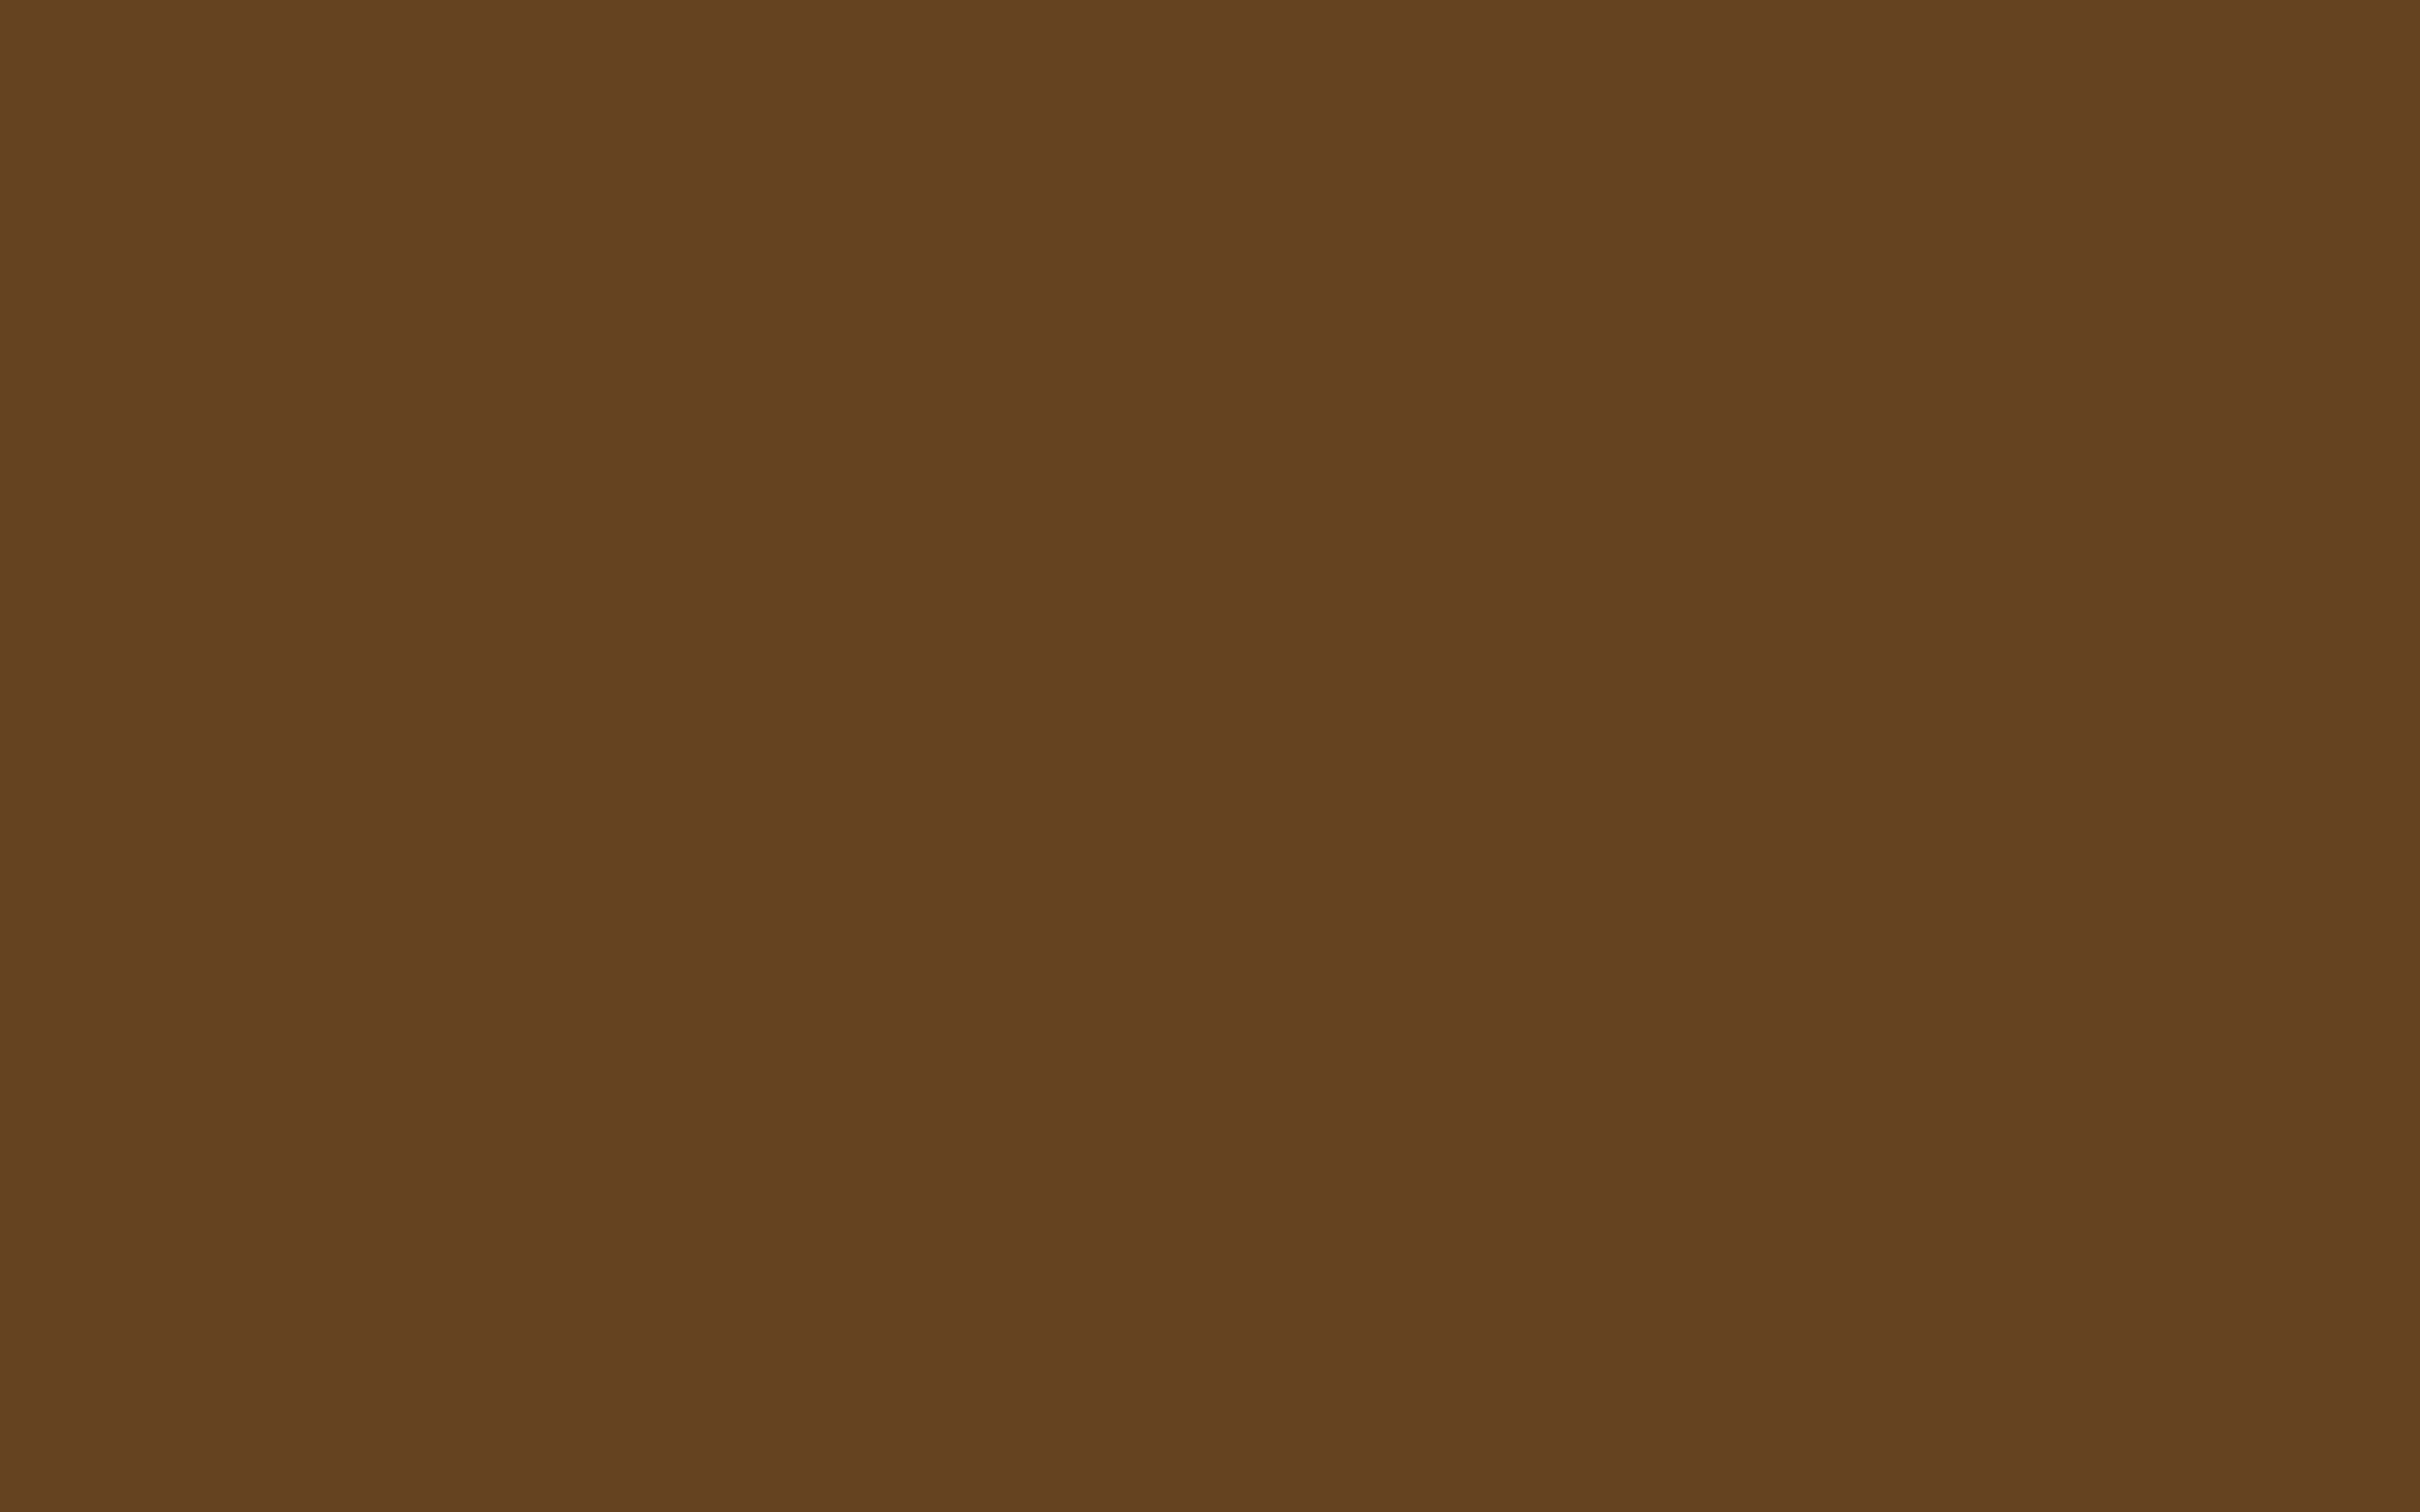 2560x1600 Otter Brown Solid Color Background